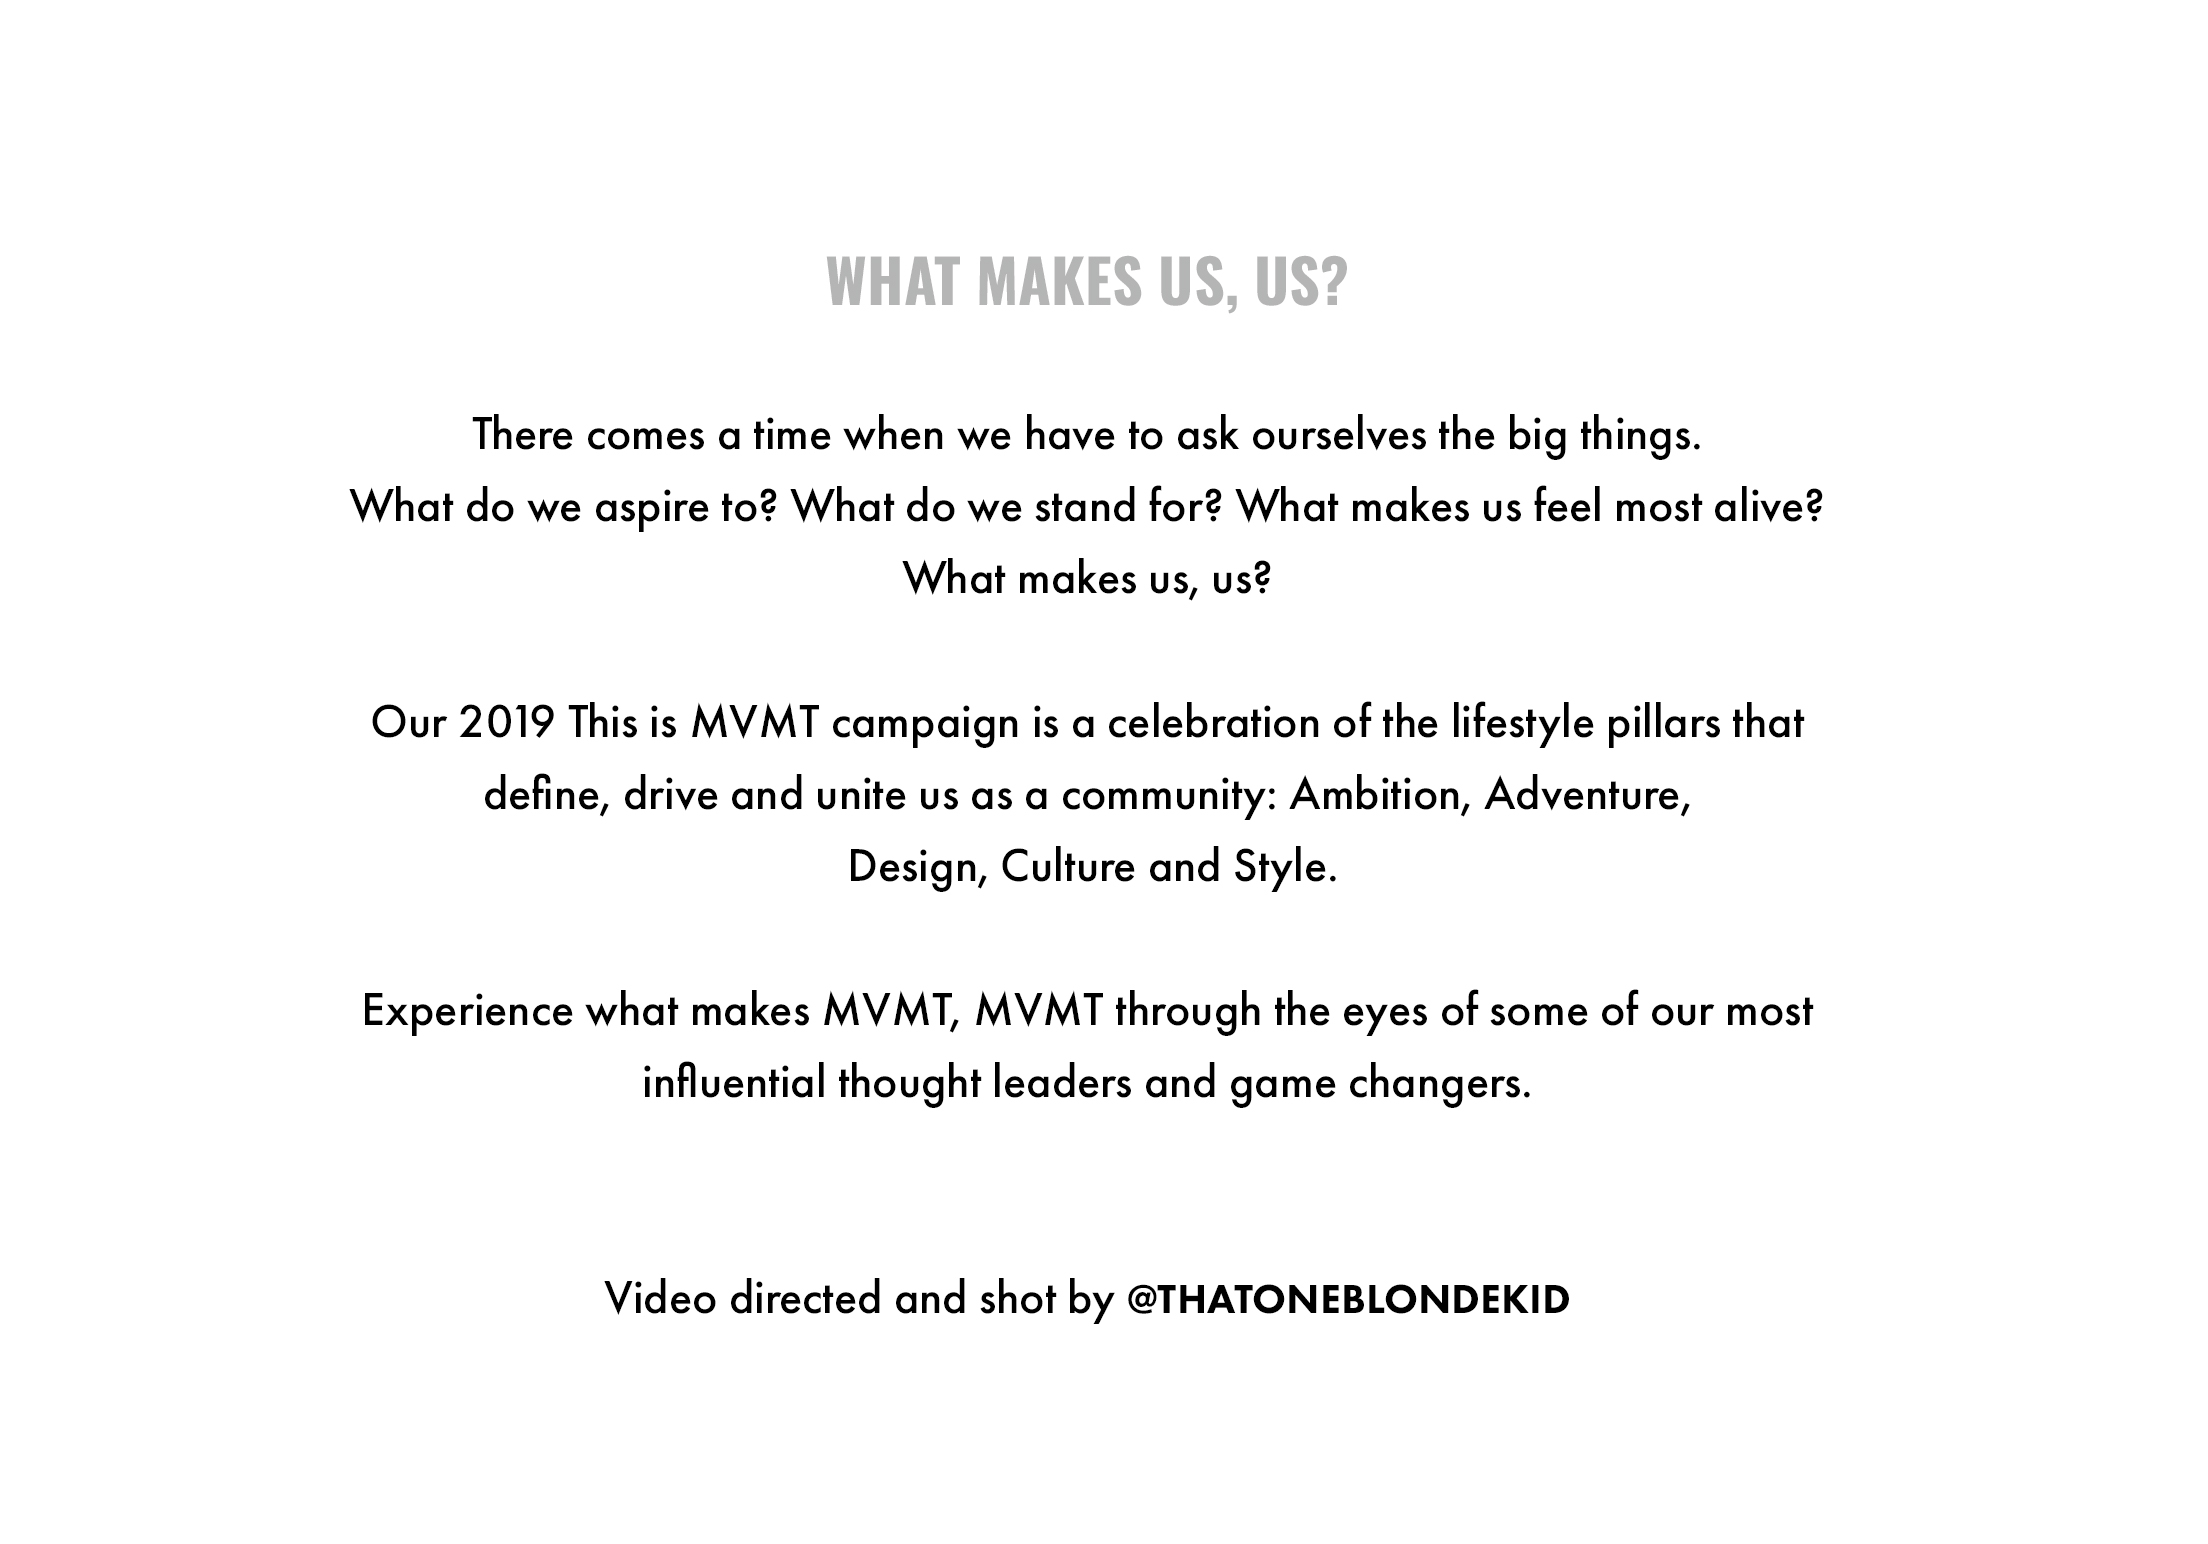 What makes us, us? There comes a time when we have to ask ourselves the big things. What do we aspire to? What do we stand for? What makes us feel most alive? What makes us, us? Our 2019 This is MVMT campaign is a celebration of the lifestyle pillars that define, drive and unite us as a community: Ambition, Adventure, Design, Culture and Style. Experience what makes MVMT, MVMT through the eyes of some of our most influential thought leaders and game changers. Video directed and shot by @thatoneblondekid